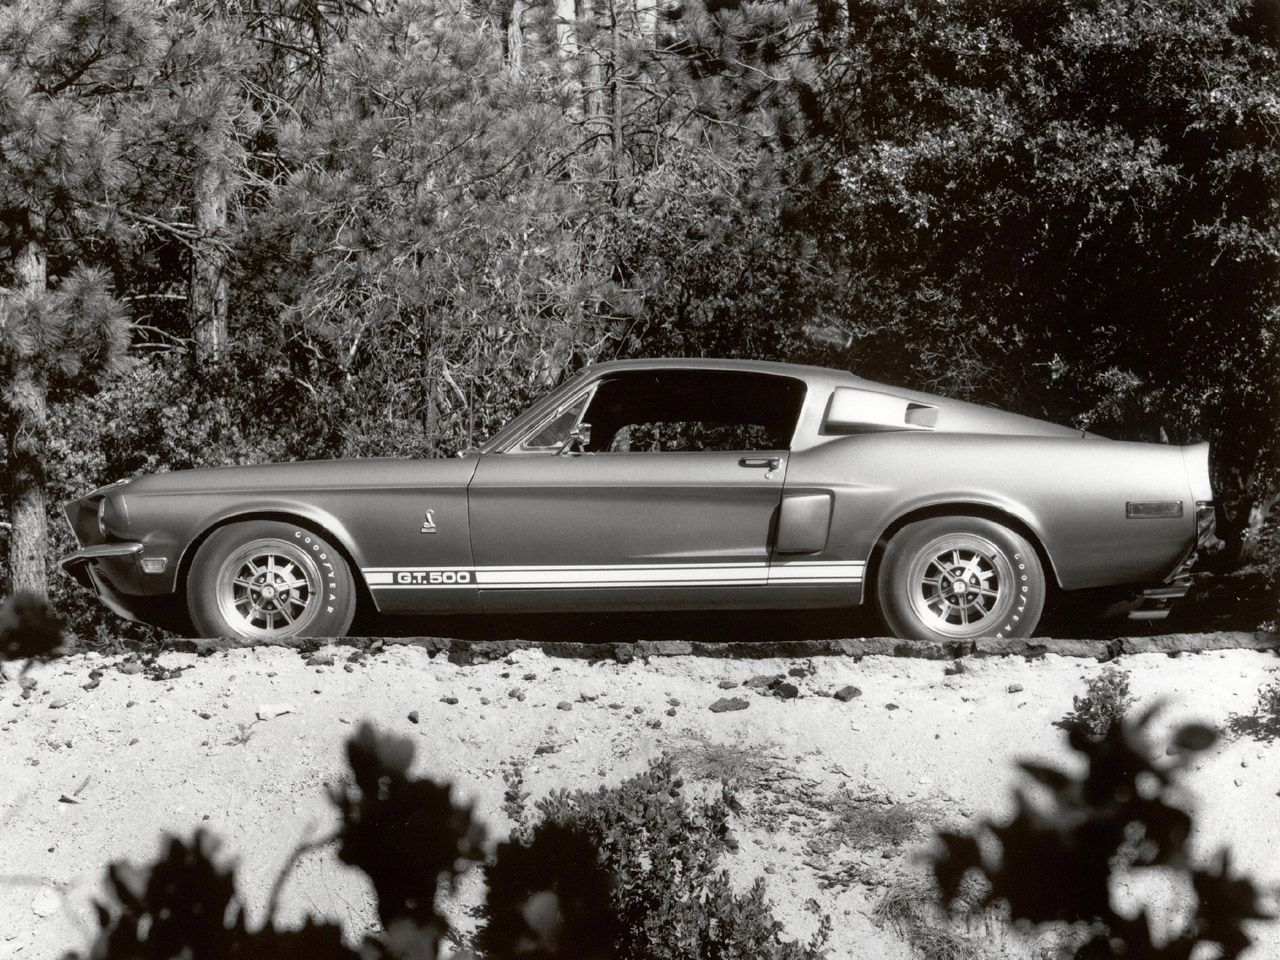 1968 Shelby Ford Mustang KR500  Dream Rides  Pinterest  Cars